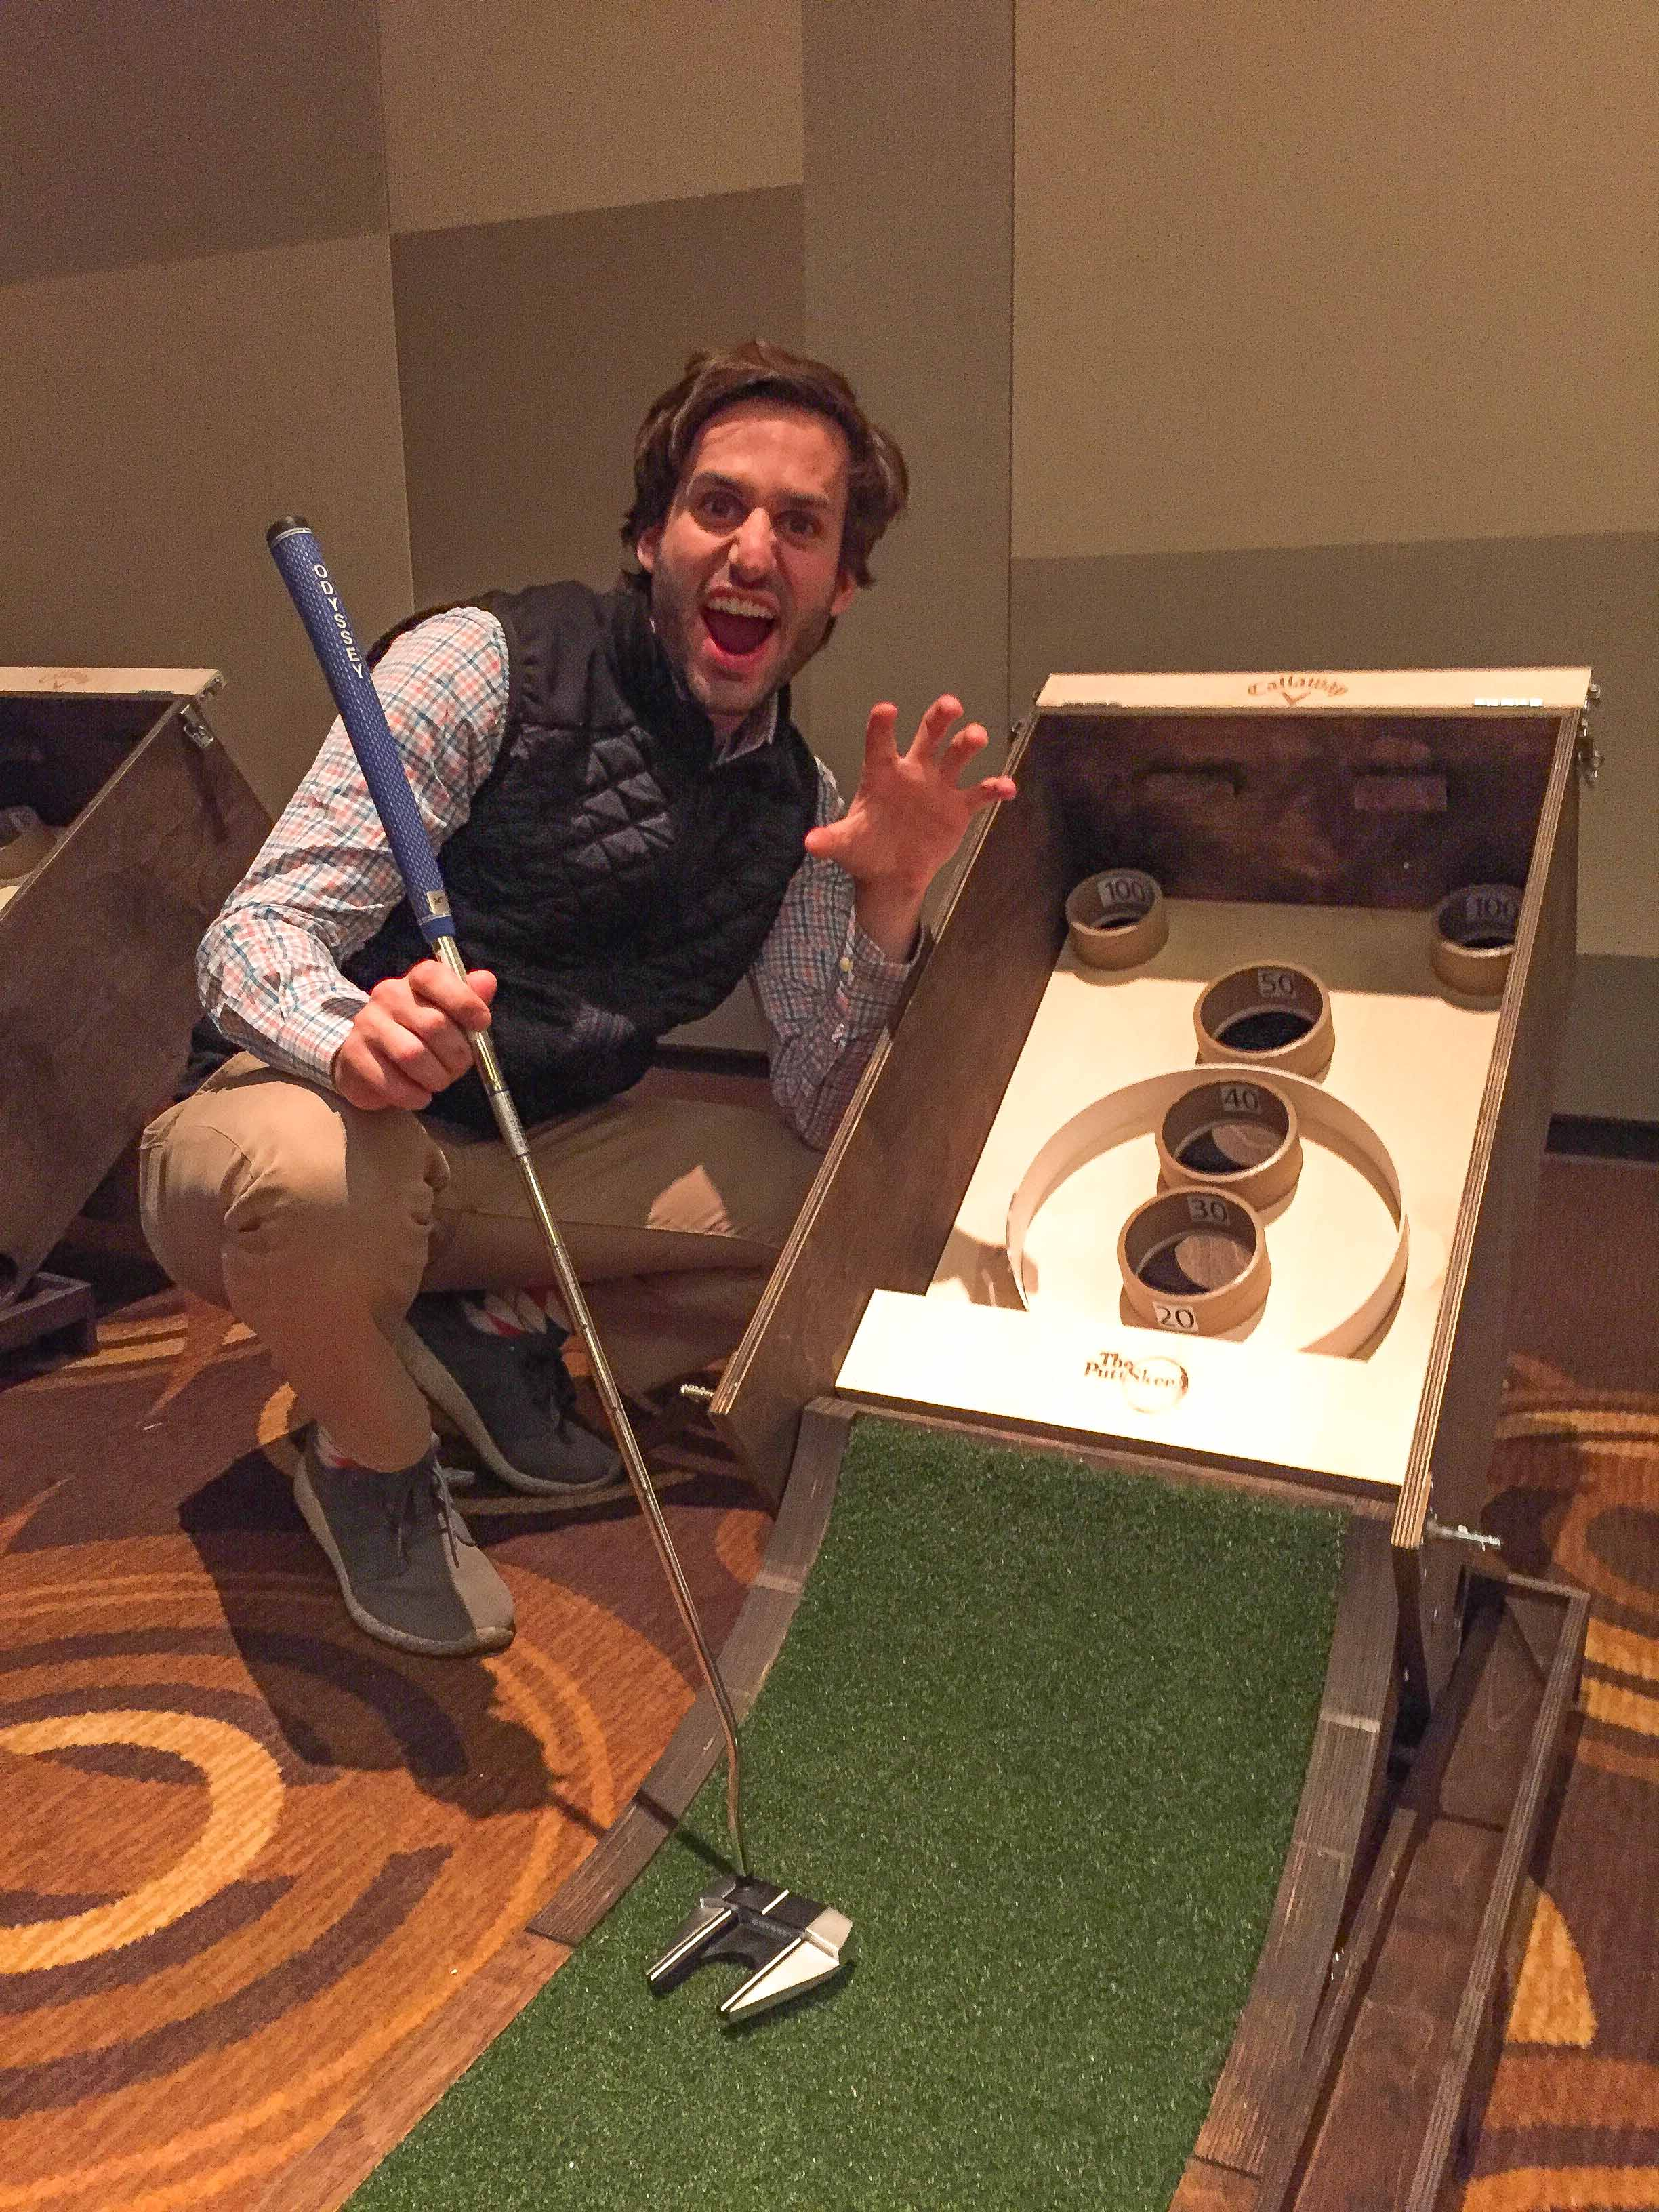 """I am pretty good at golf, I am really good at skee-ball, but I am absolutely awful at Puttskee"" - Four time National Skee-Ball Champion, one time TYPHI Champion,  Joey The Cat ."